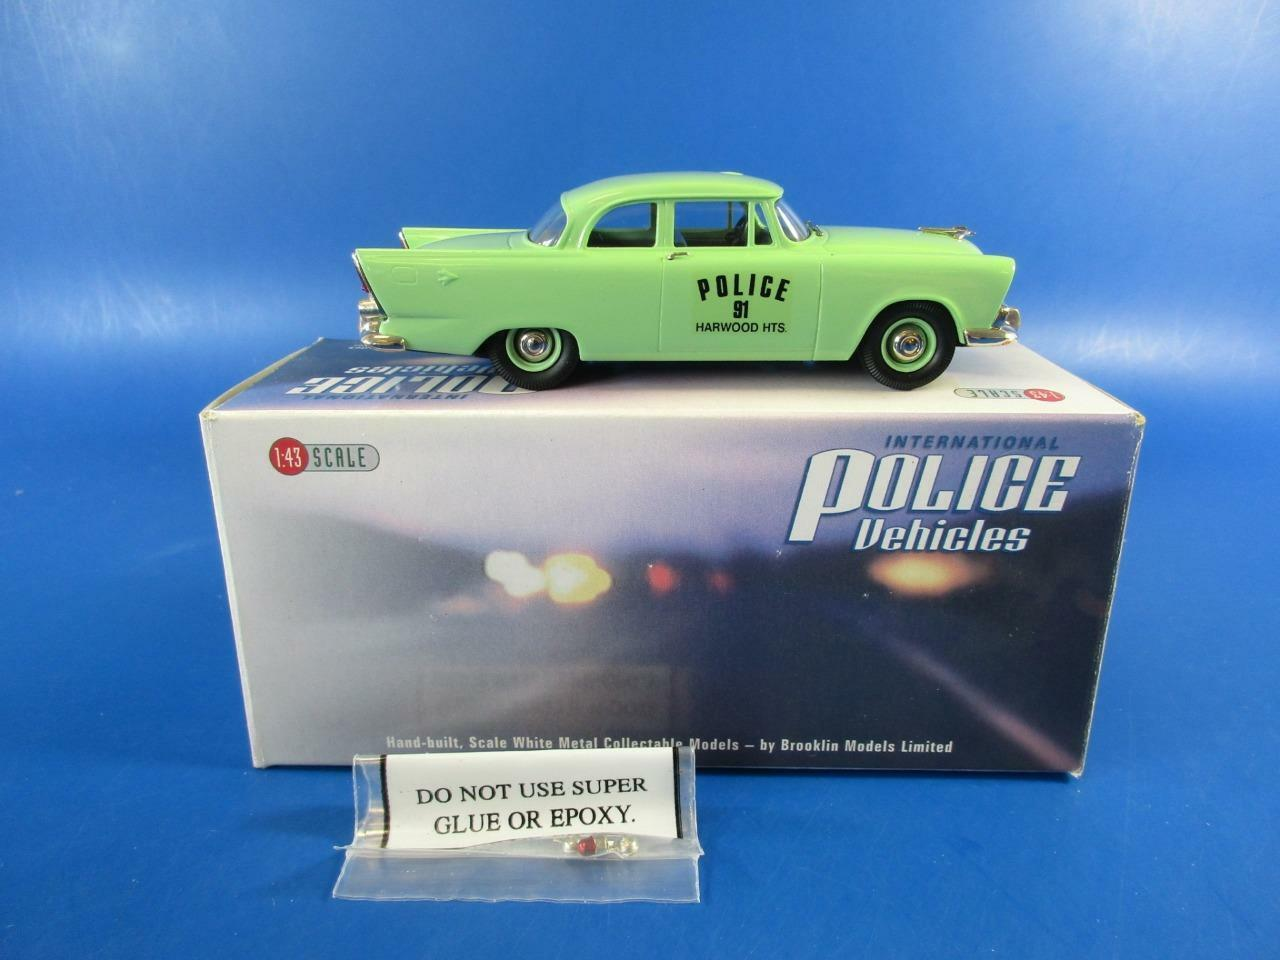 BROOKLIN MODELS IPV 21 1956 PLYMOUTH PLAZA HARWOOD HEIGHTS, 1 43, MIB